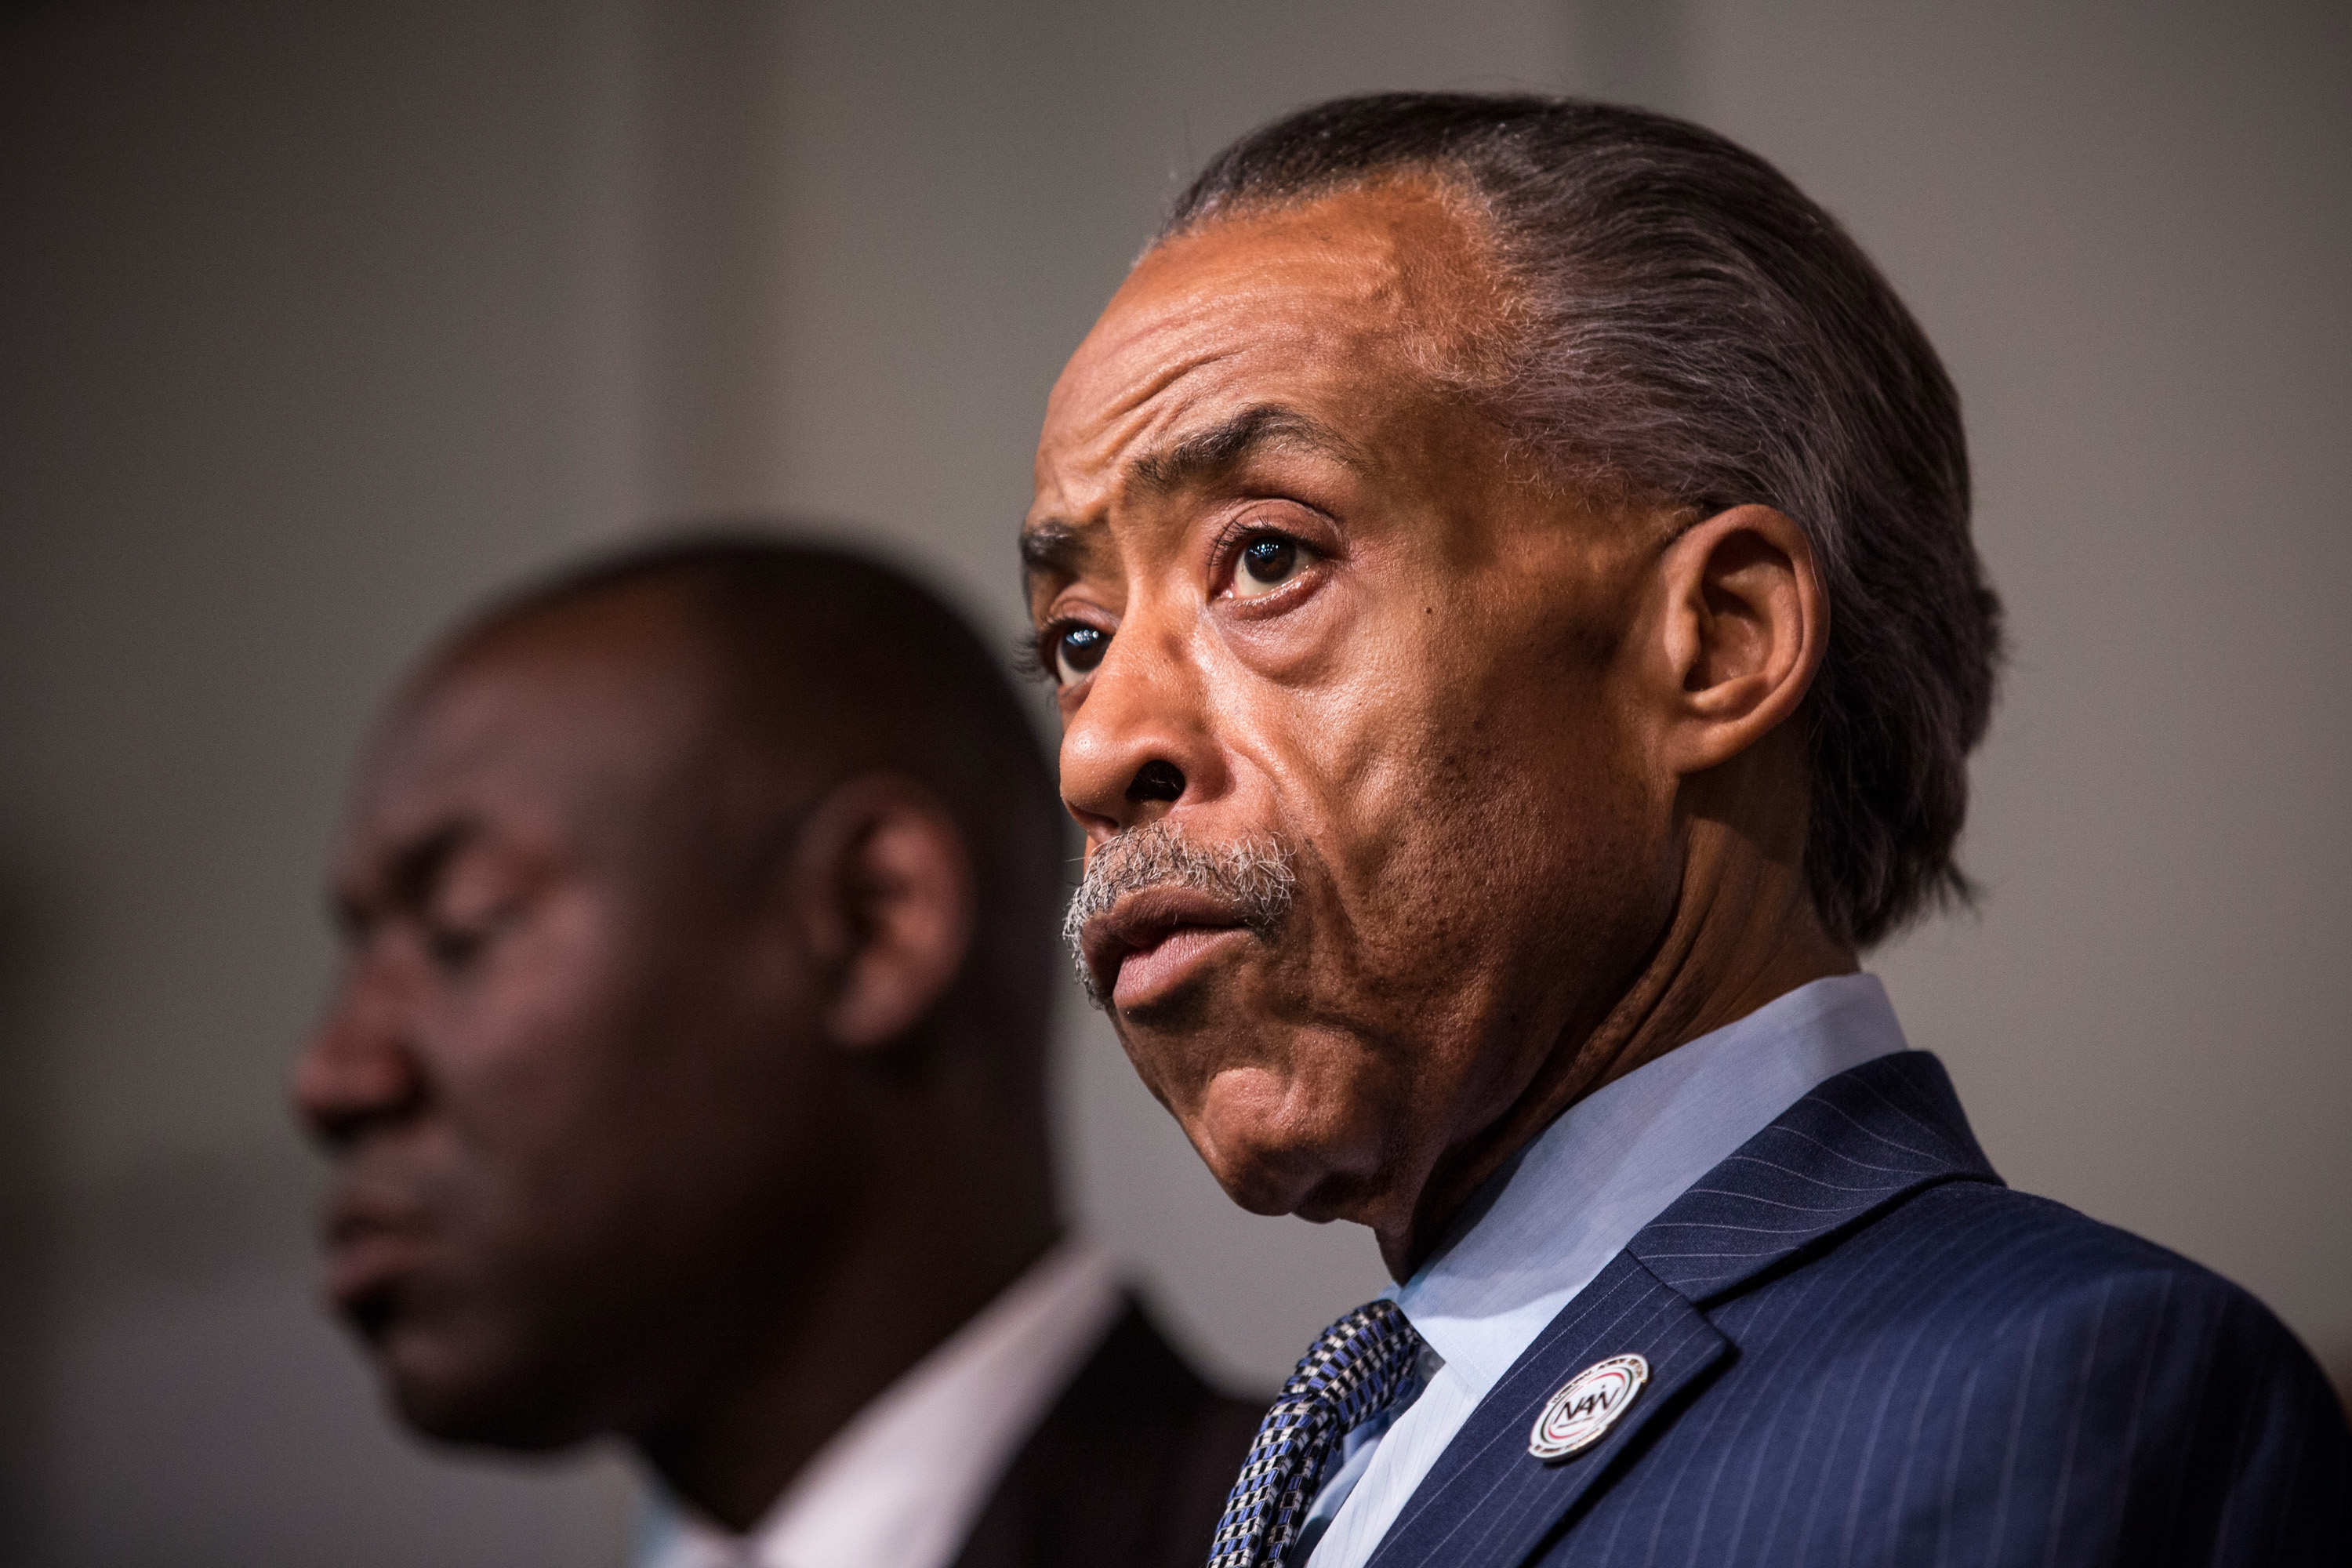 Reverand Al Sharpton speaks at a press conference on the eve of Thanksgiving to pray and address the events of the last few days regarding the grand jury verdict of police officer Darren Wilson on Nov. 26, 2014 in New York.